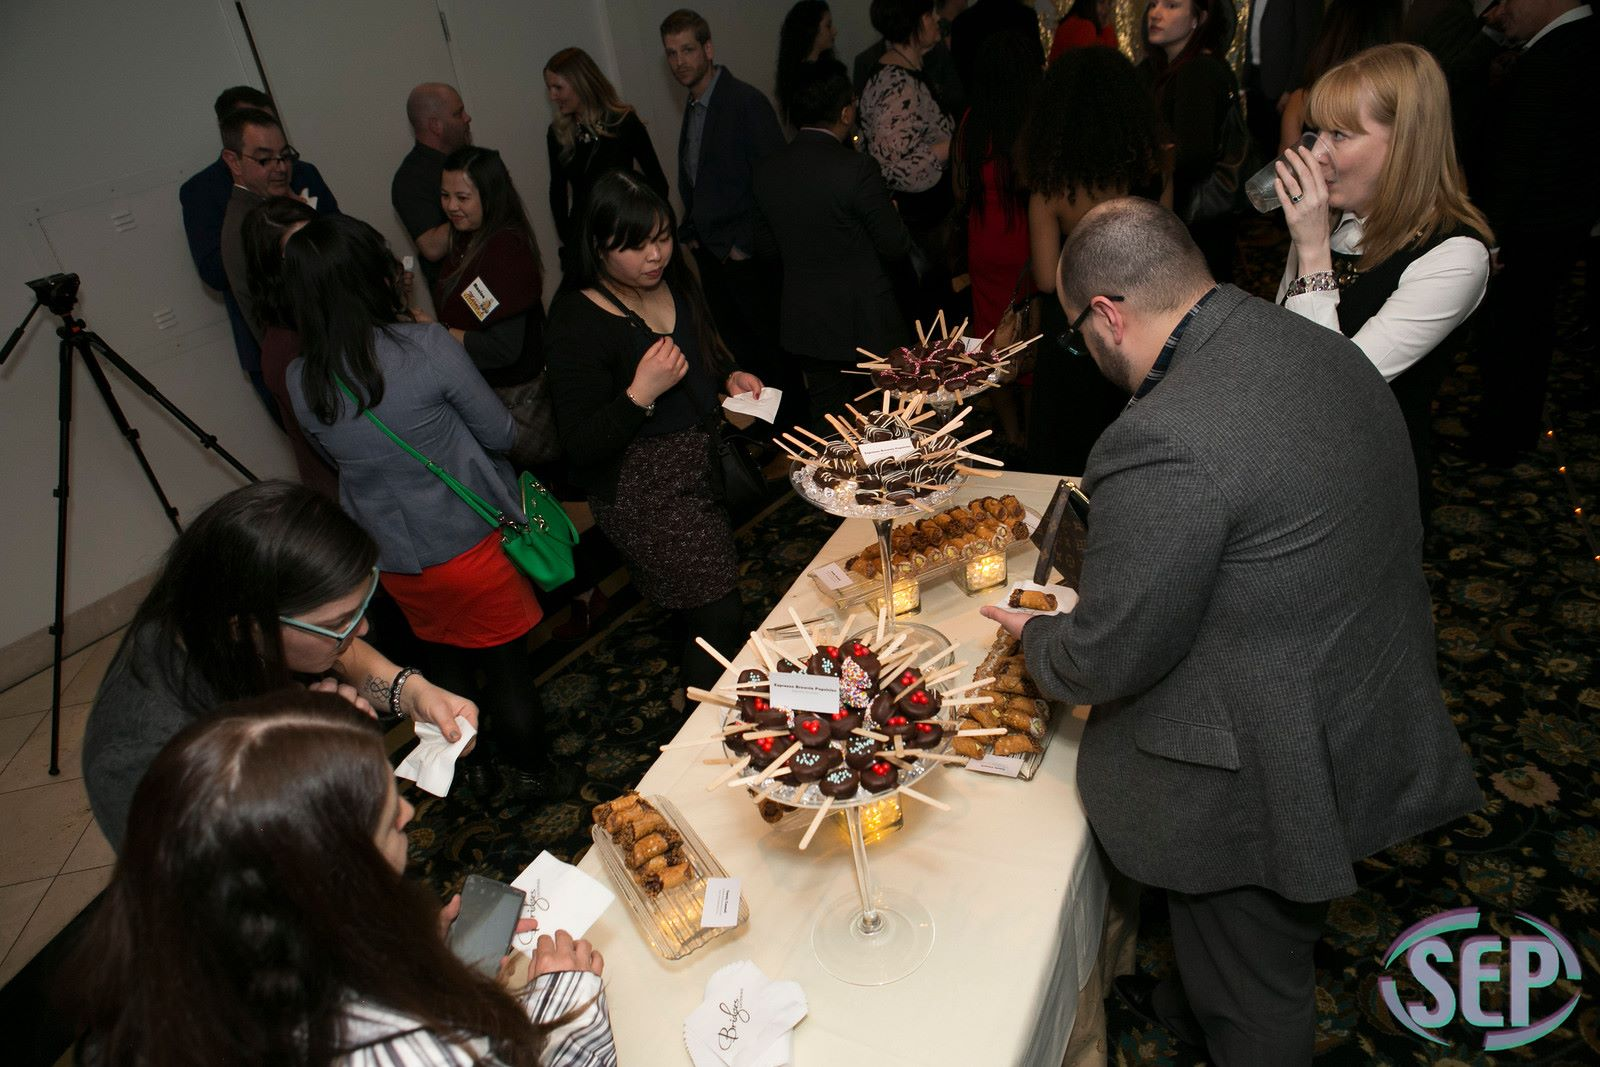 guests grabbing dessert from a table